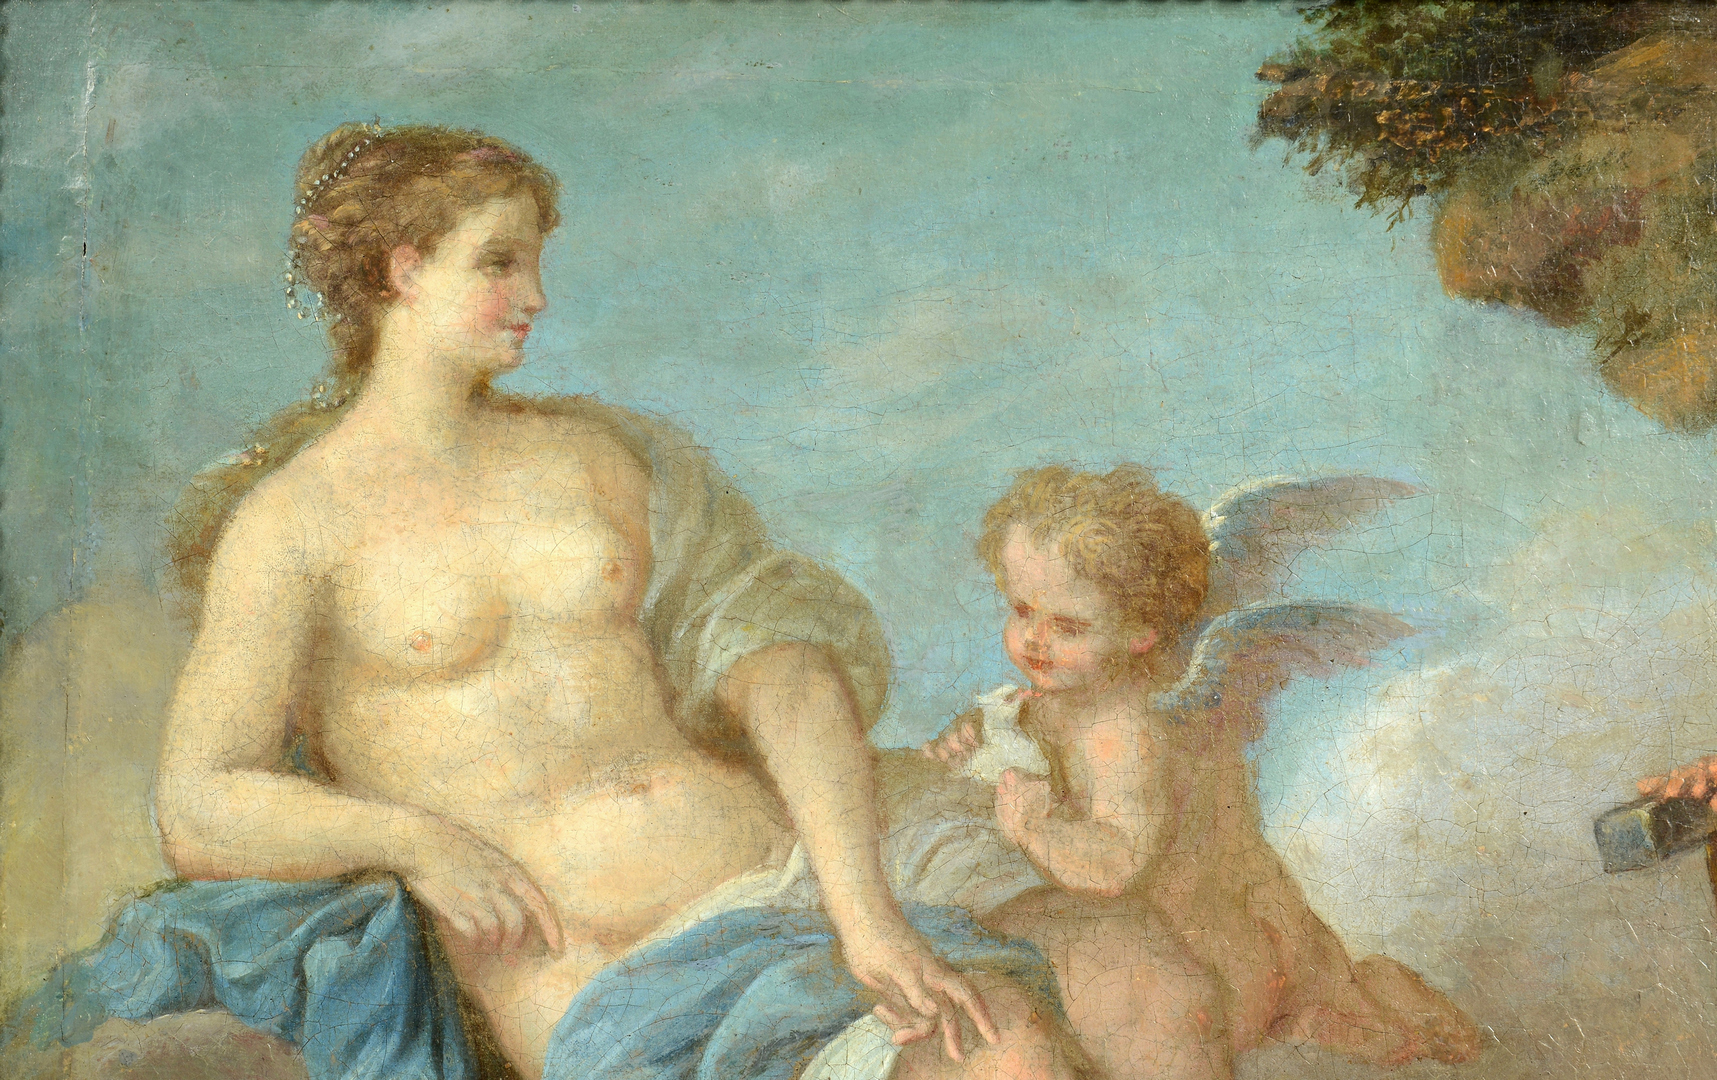 Lot 3088106: Attr. LaGrenee, Vulcan and Venus, oil on canvas